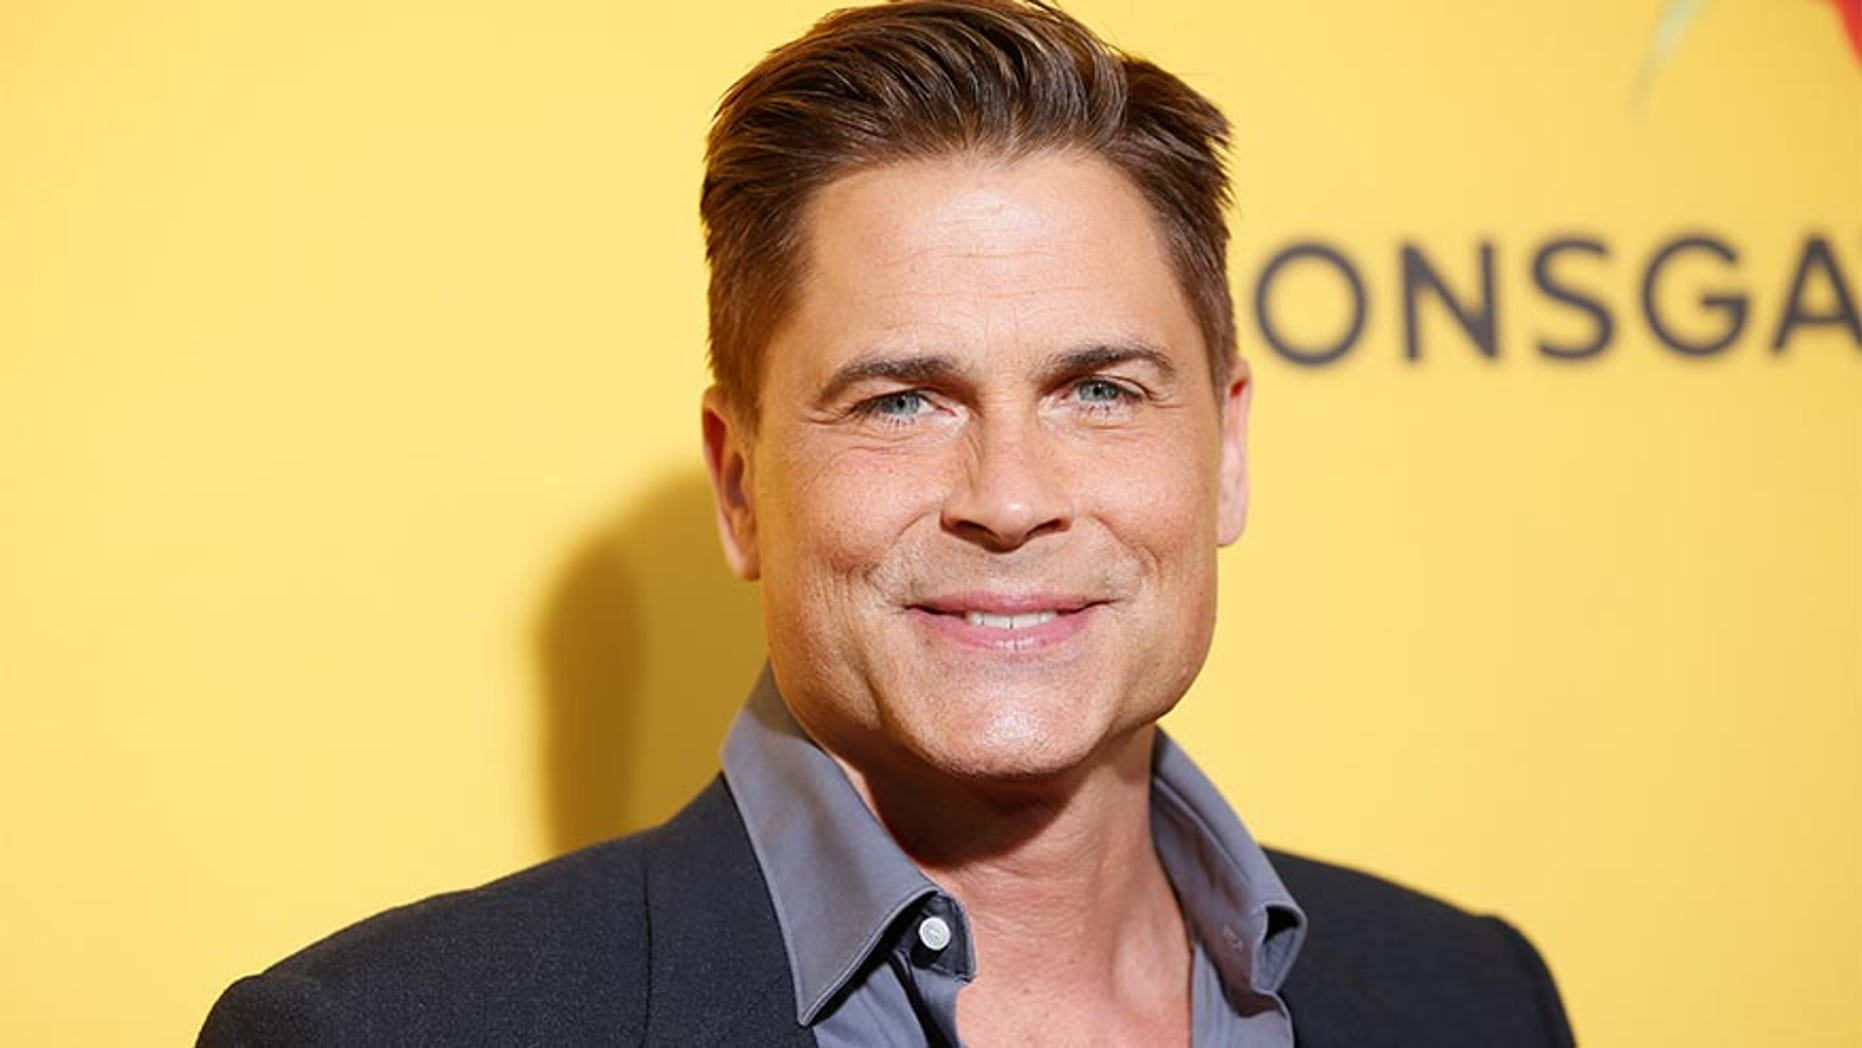 Rob Lowe's tweet about Sen. Elizabeth Warren was not well-received by some in Hollywood. (Reuters)